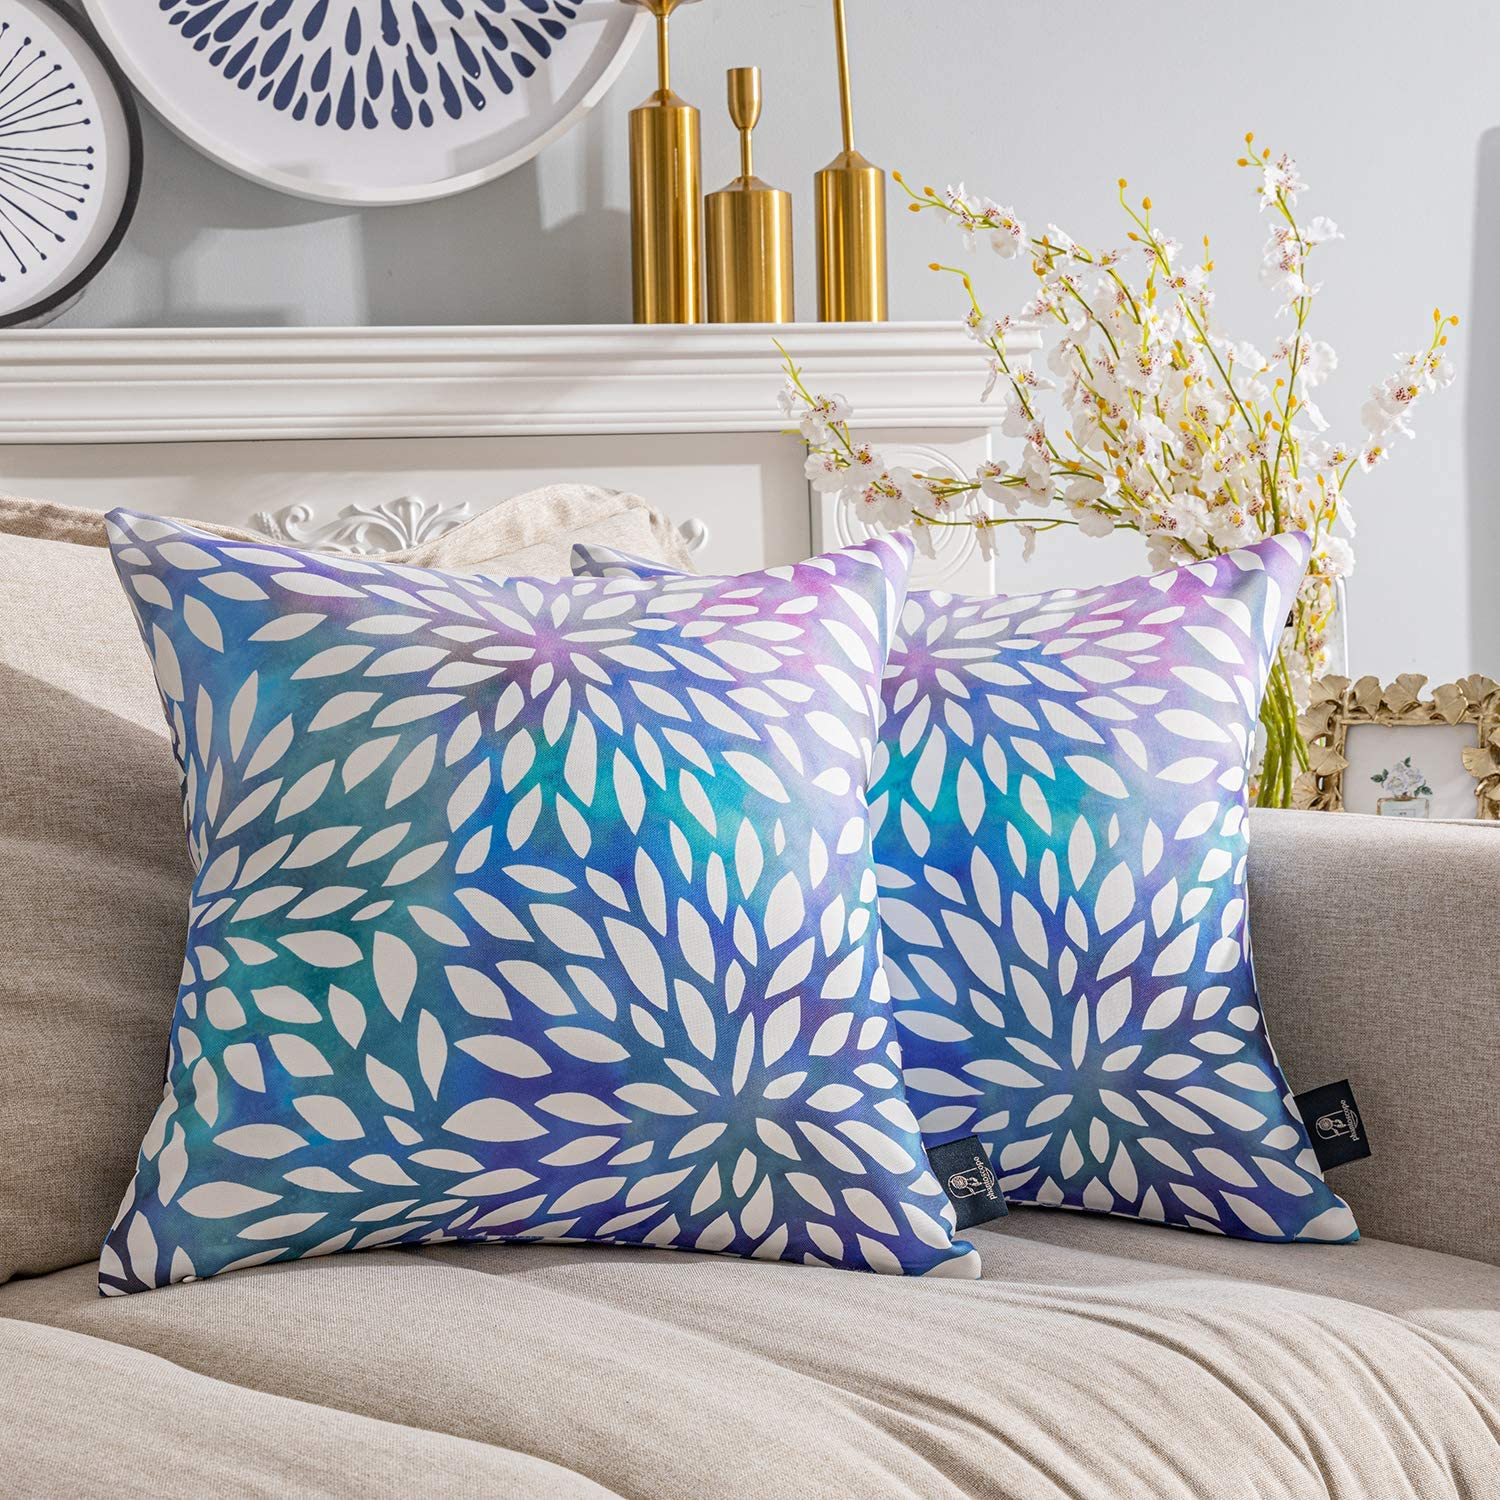 Phantoscope Pack of 2 New Living Series Gradient Petals Double Side Print Decorative Throw Pillow Case Cushion Cover, Purple, 18 x 18 inches, 45 x 45 cm